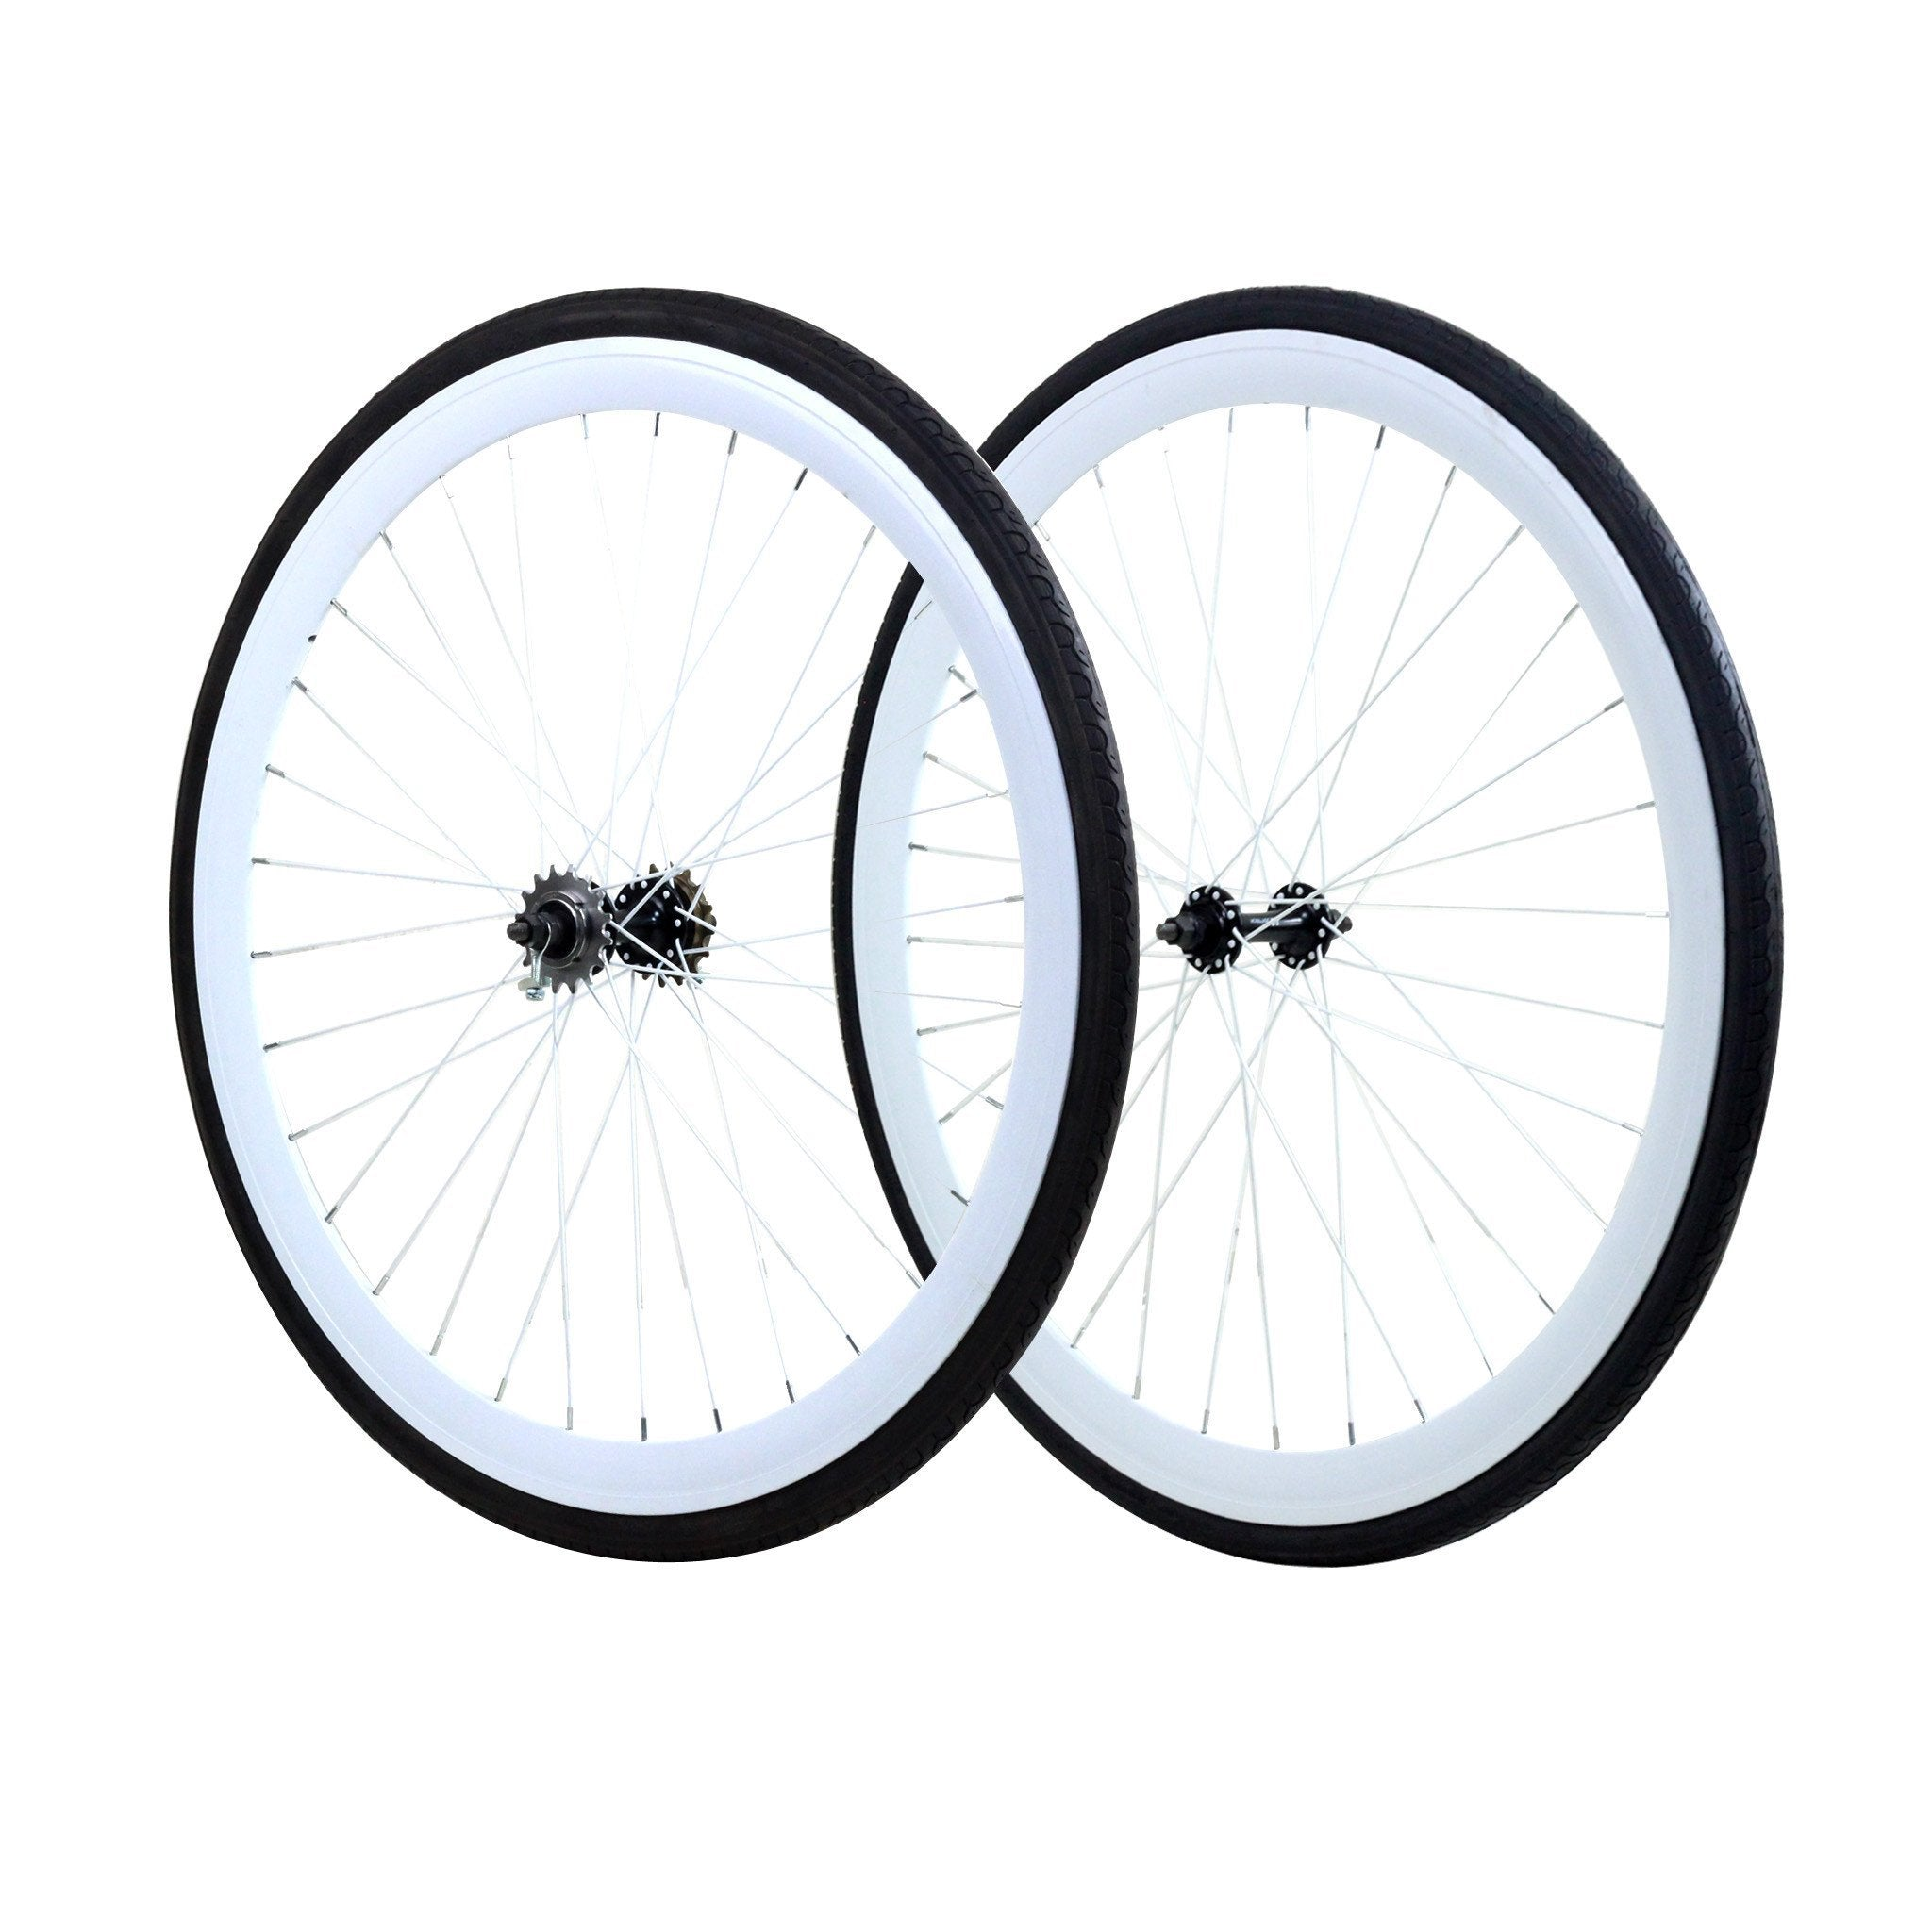 Wheelset - White 700c